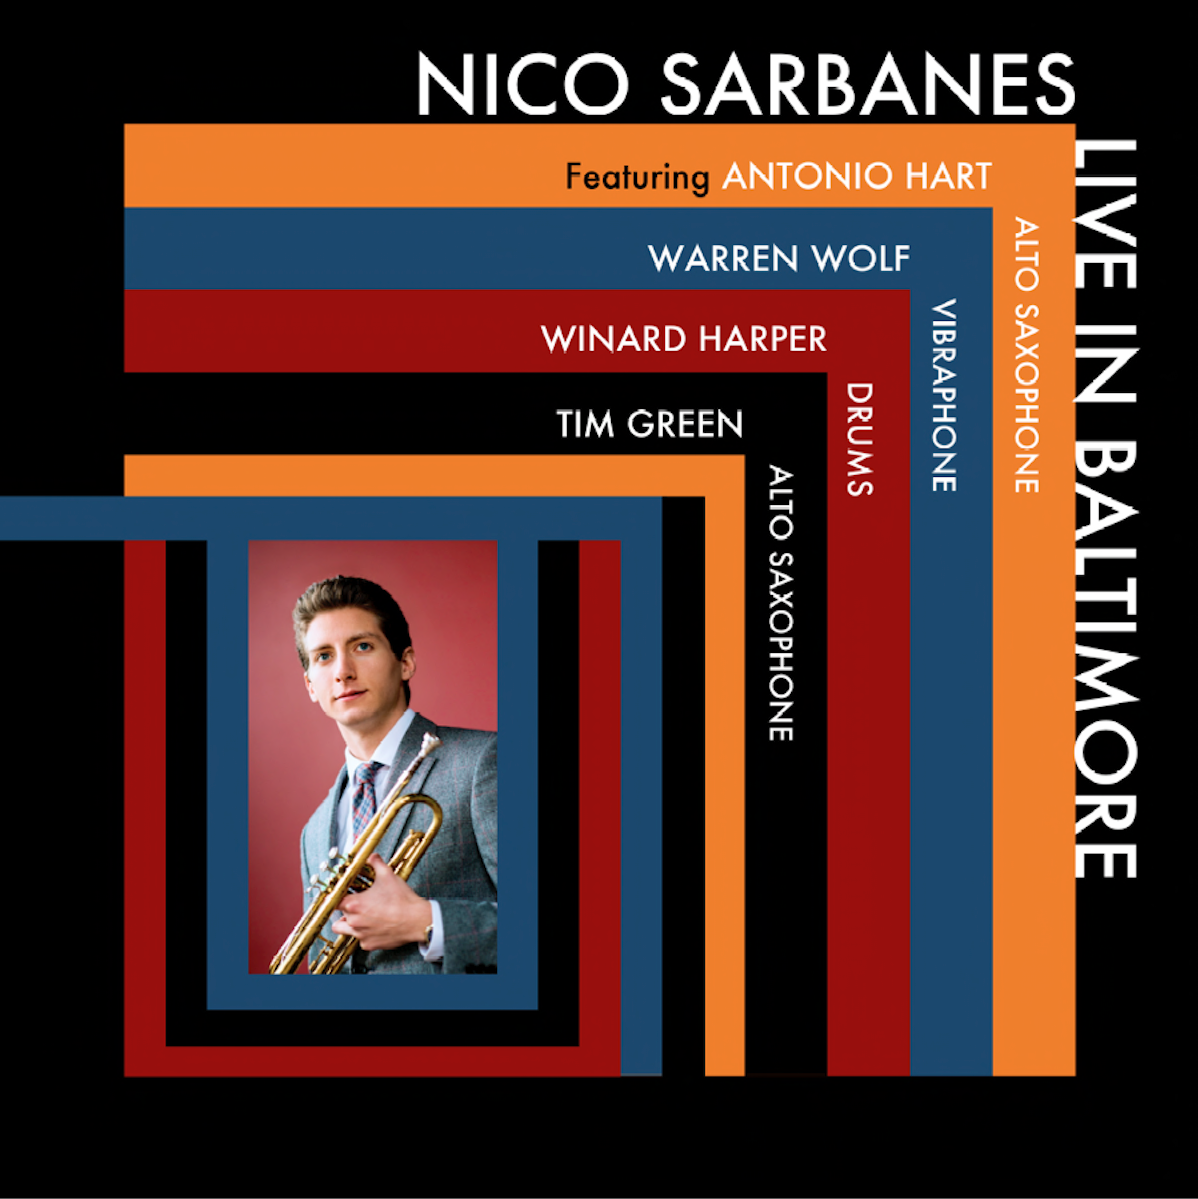 Sarbanes album cover